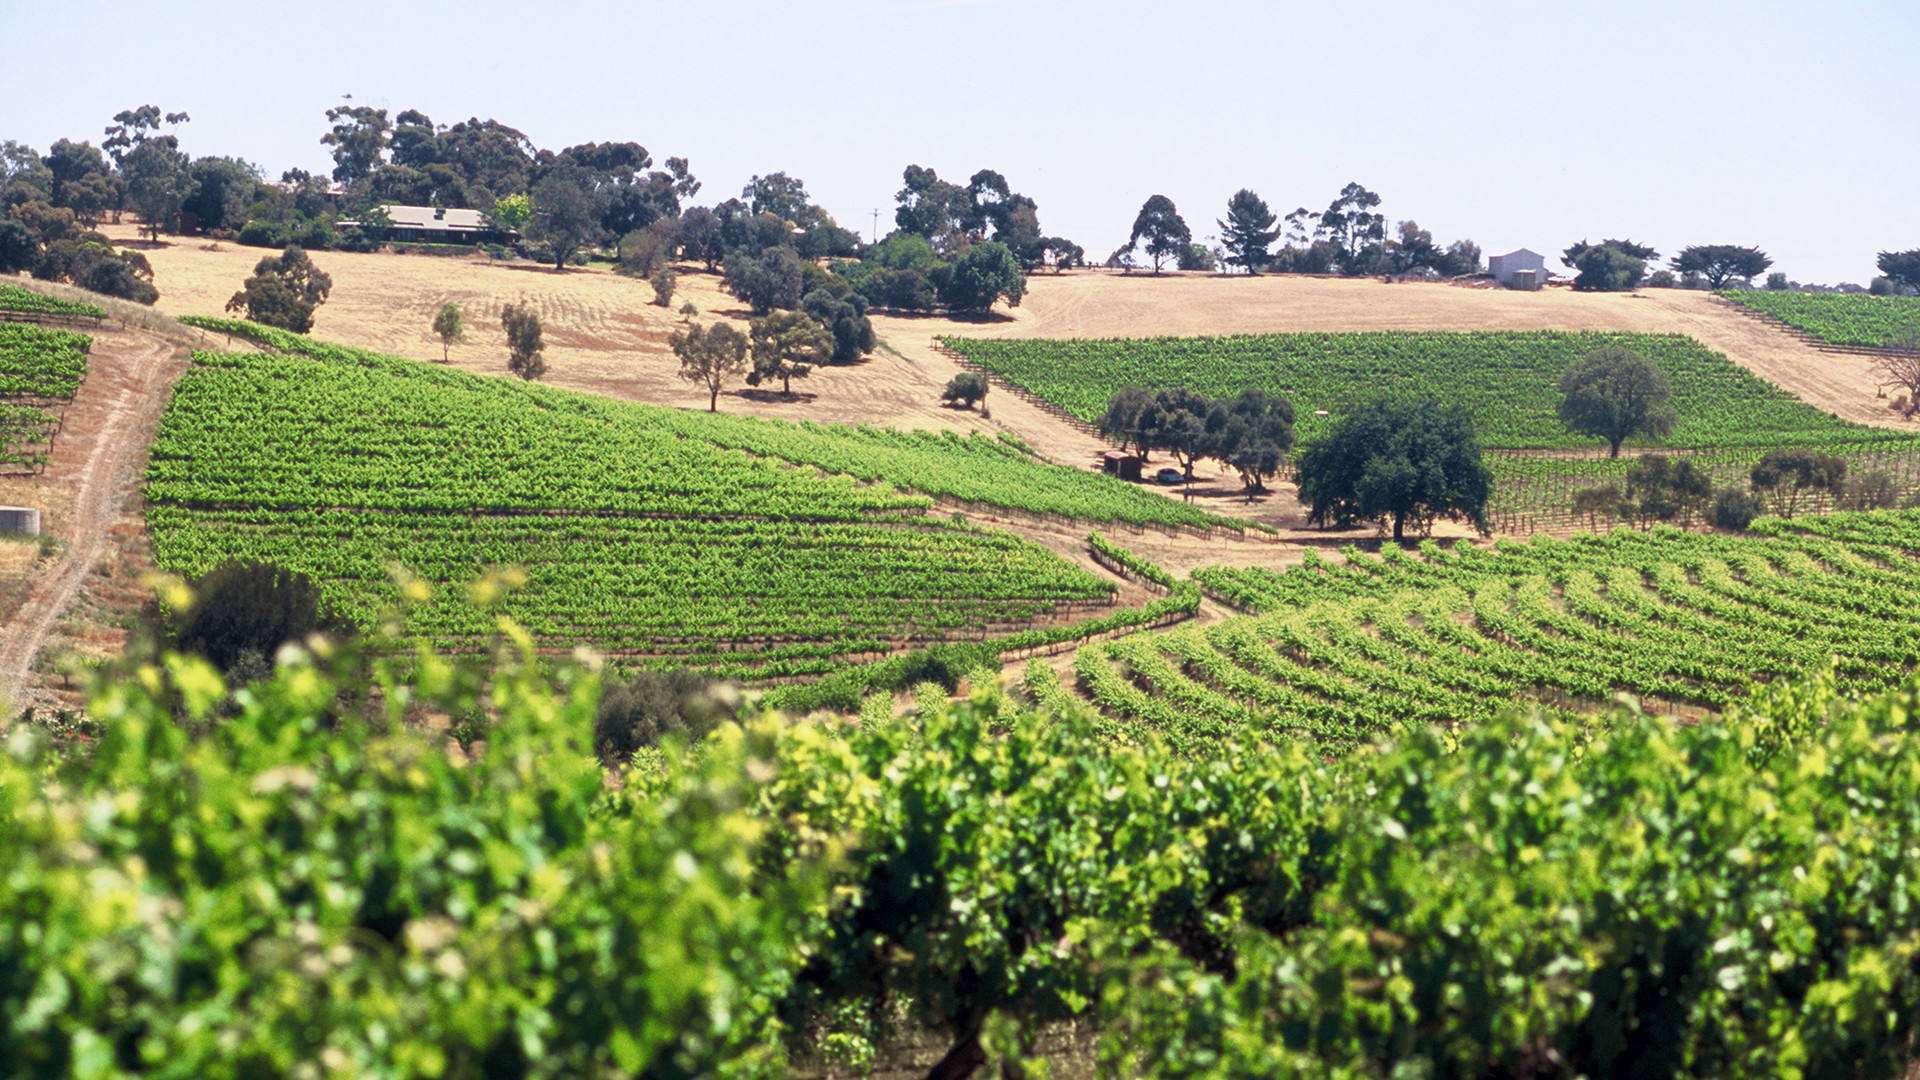 McLaren Vale vineyards owned by Penfolds